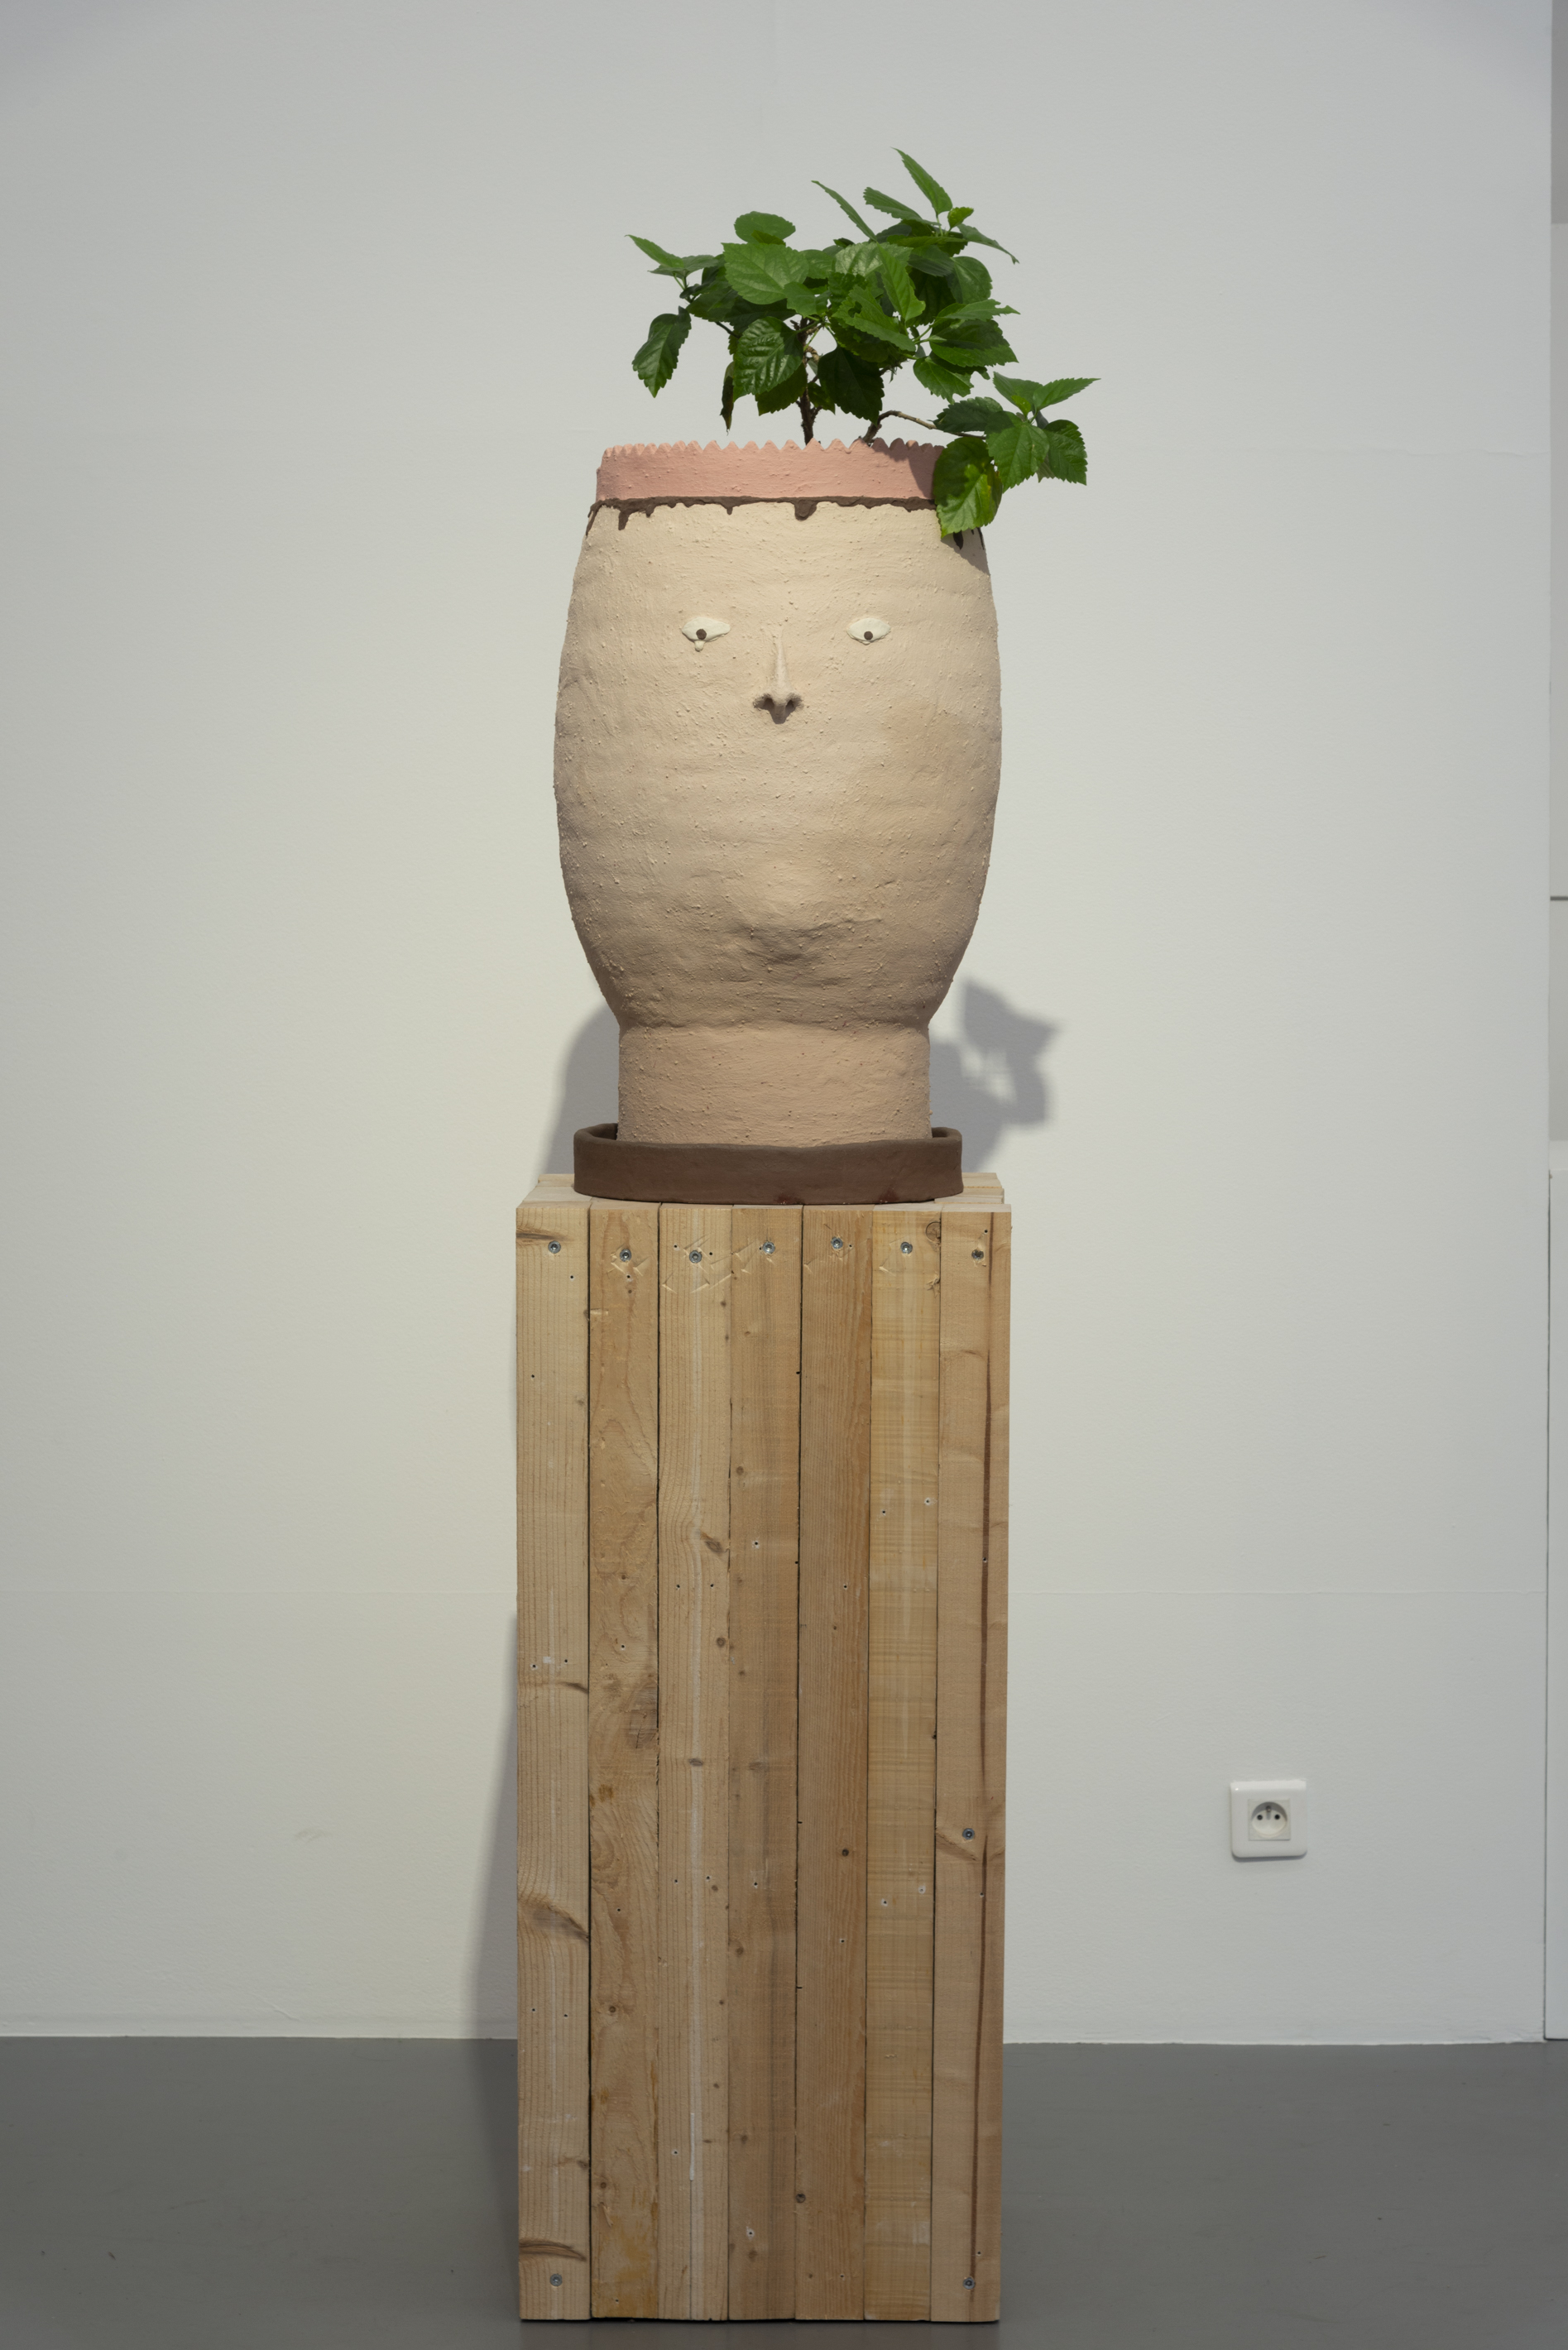 Éléonore Saintagnan, La Reine, 2019 grès coloré, abutilon production : La Criée centre d'art contemporain, Rennes courtesy de l'artiste photo : Benoît Mauras